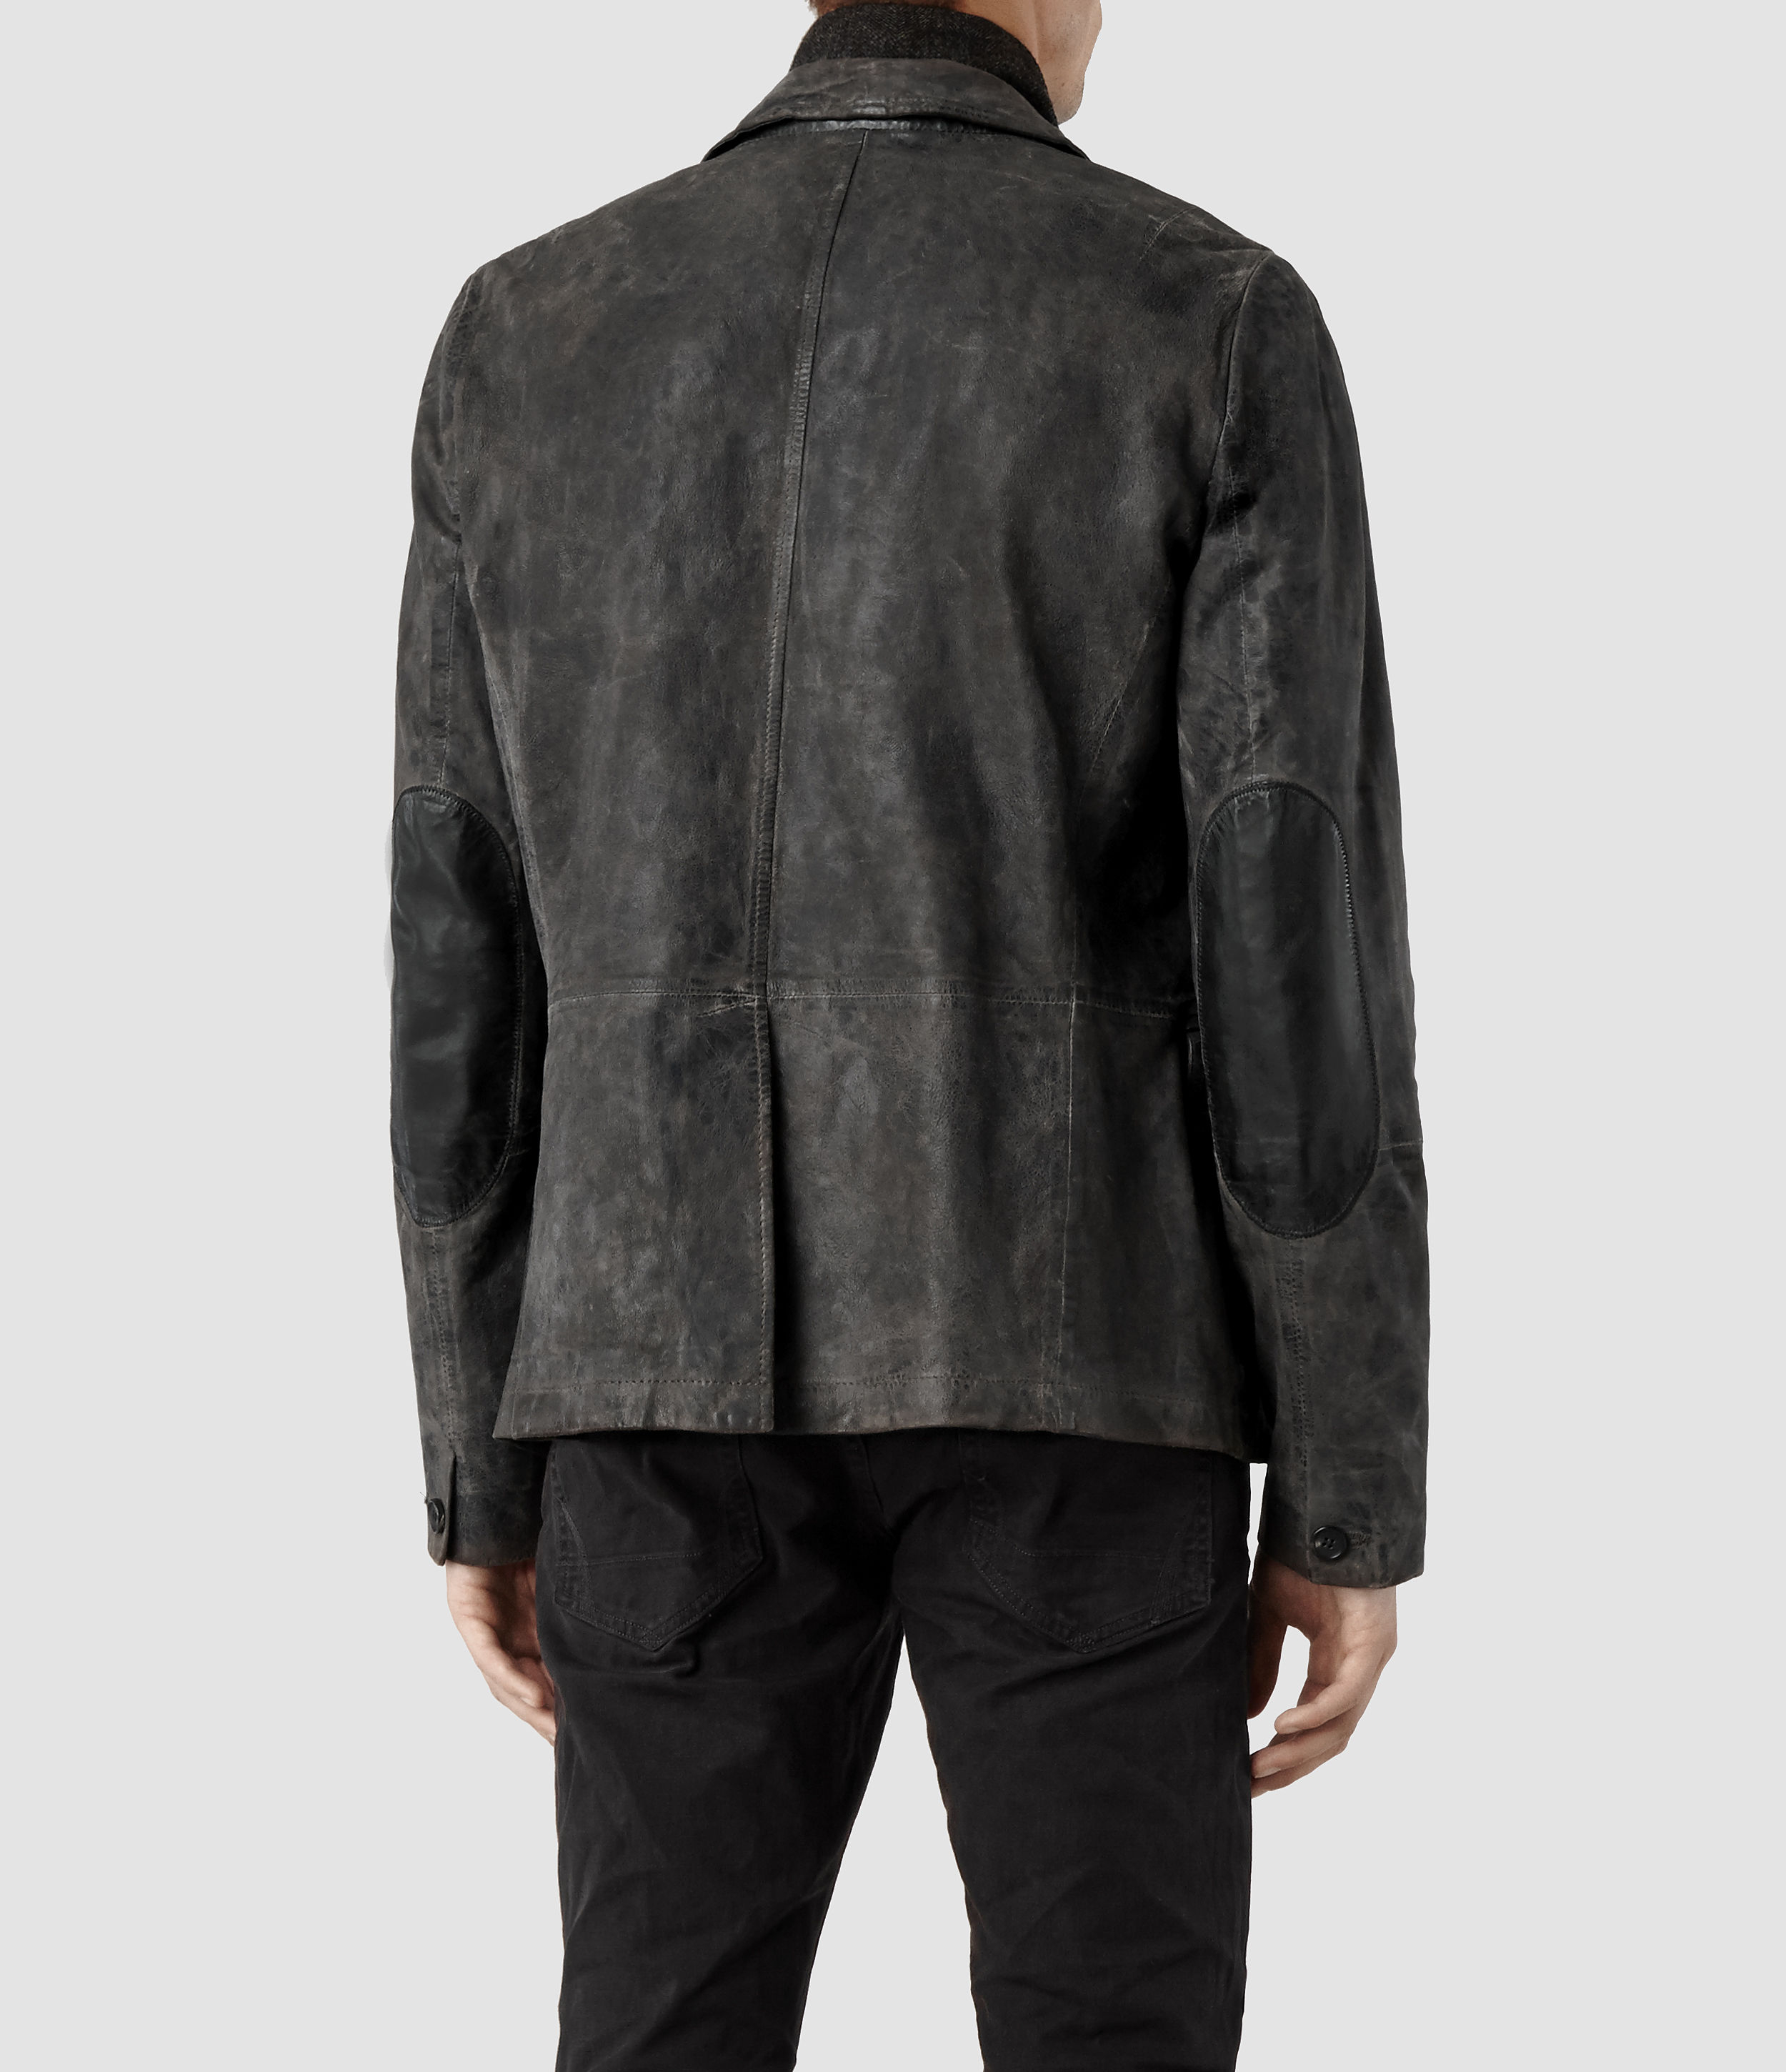 Allsaints Survey Leather Blazer In Gray For Men Lyst